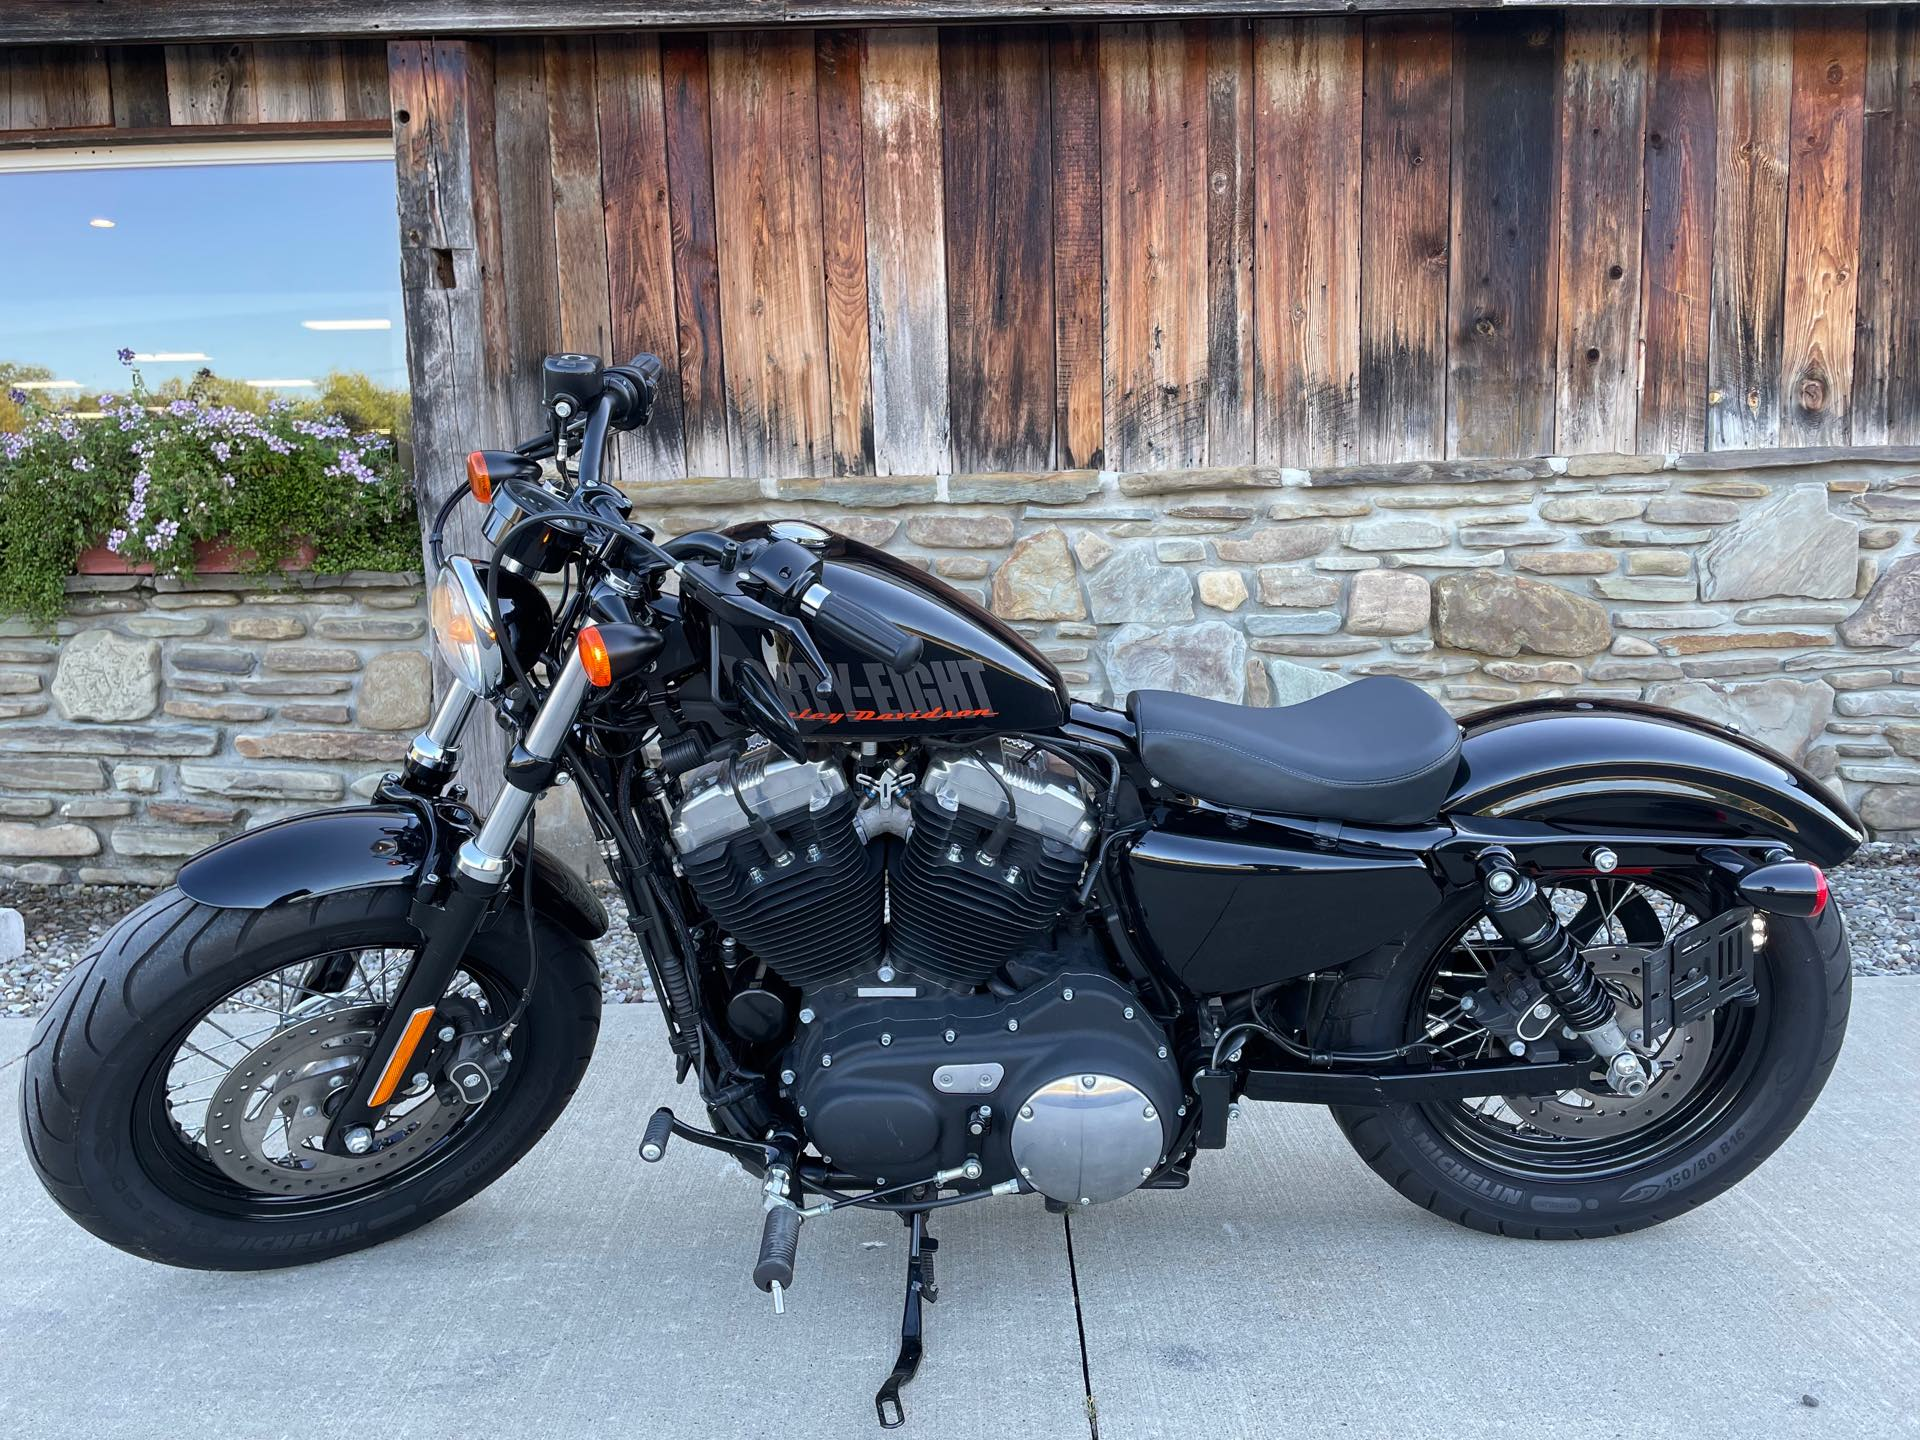 2014 Harley-Davidson Sportster Forty-Eight at Arkport Cycles